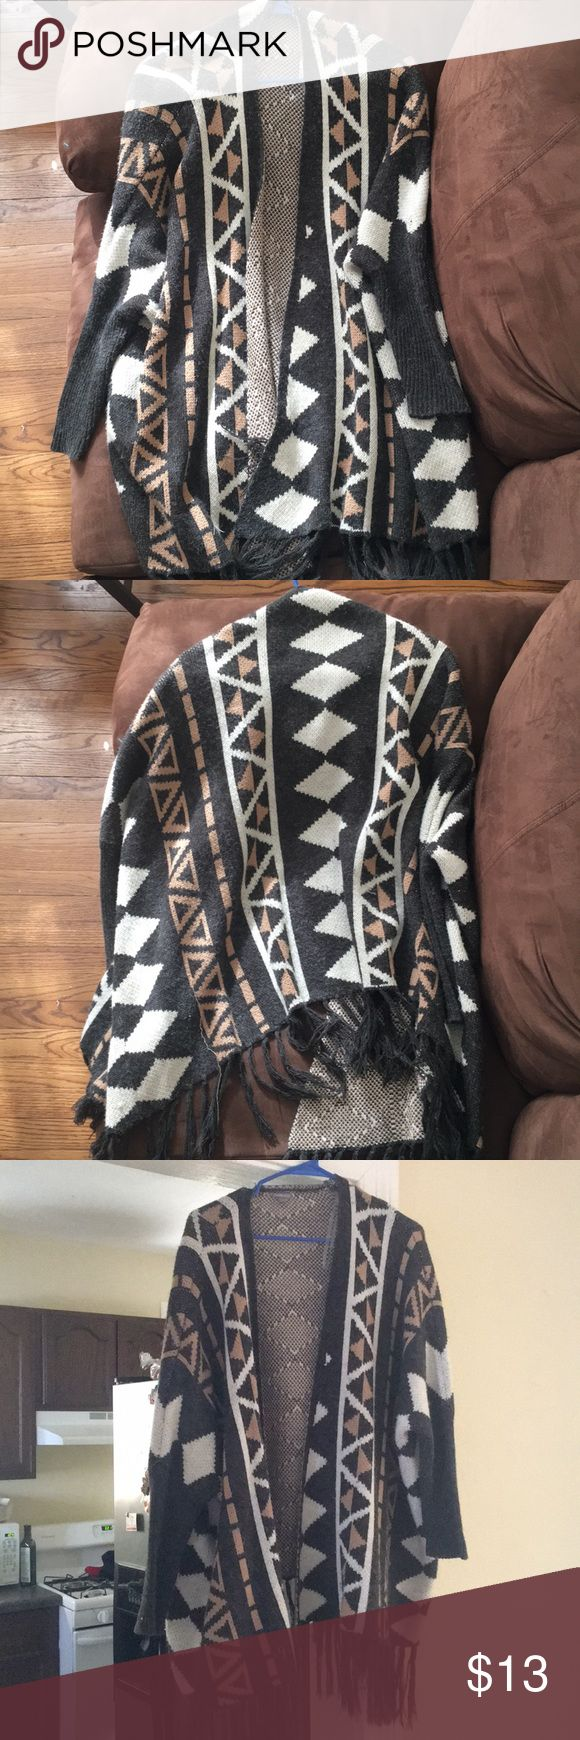 S/M Charlotte Russe tribal print cardigan Grey, camel and cream accented patterns. Small/medium in size. Fringe accents on the bottoms of the cardigan. Extremely warm and comfy— perfect for the cold months! Charlotte Russe Sweaters Cardigans